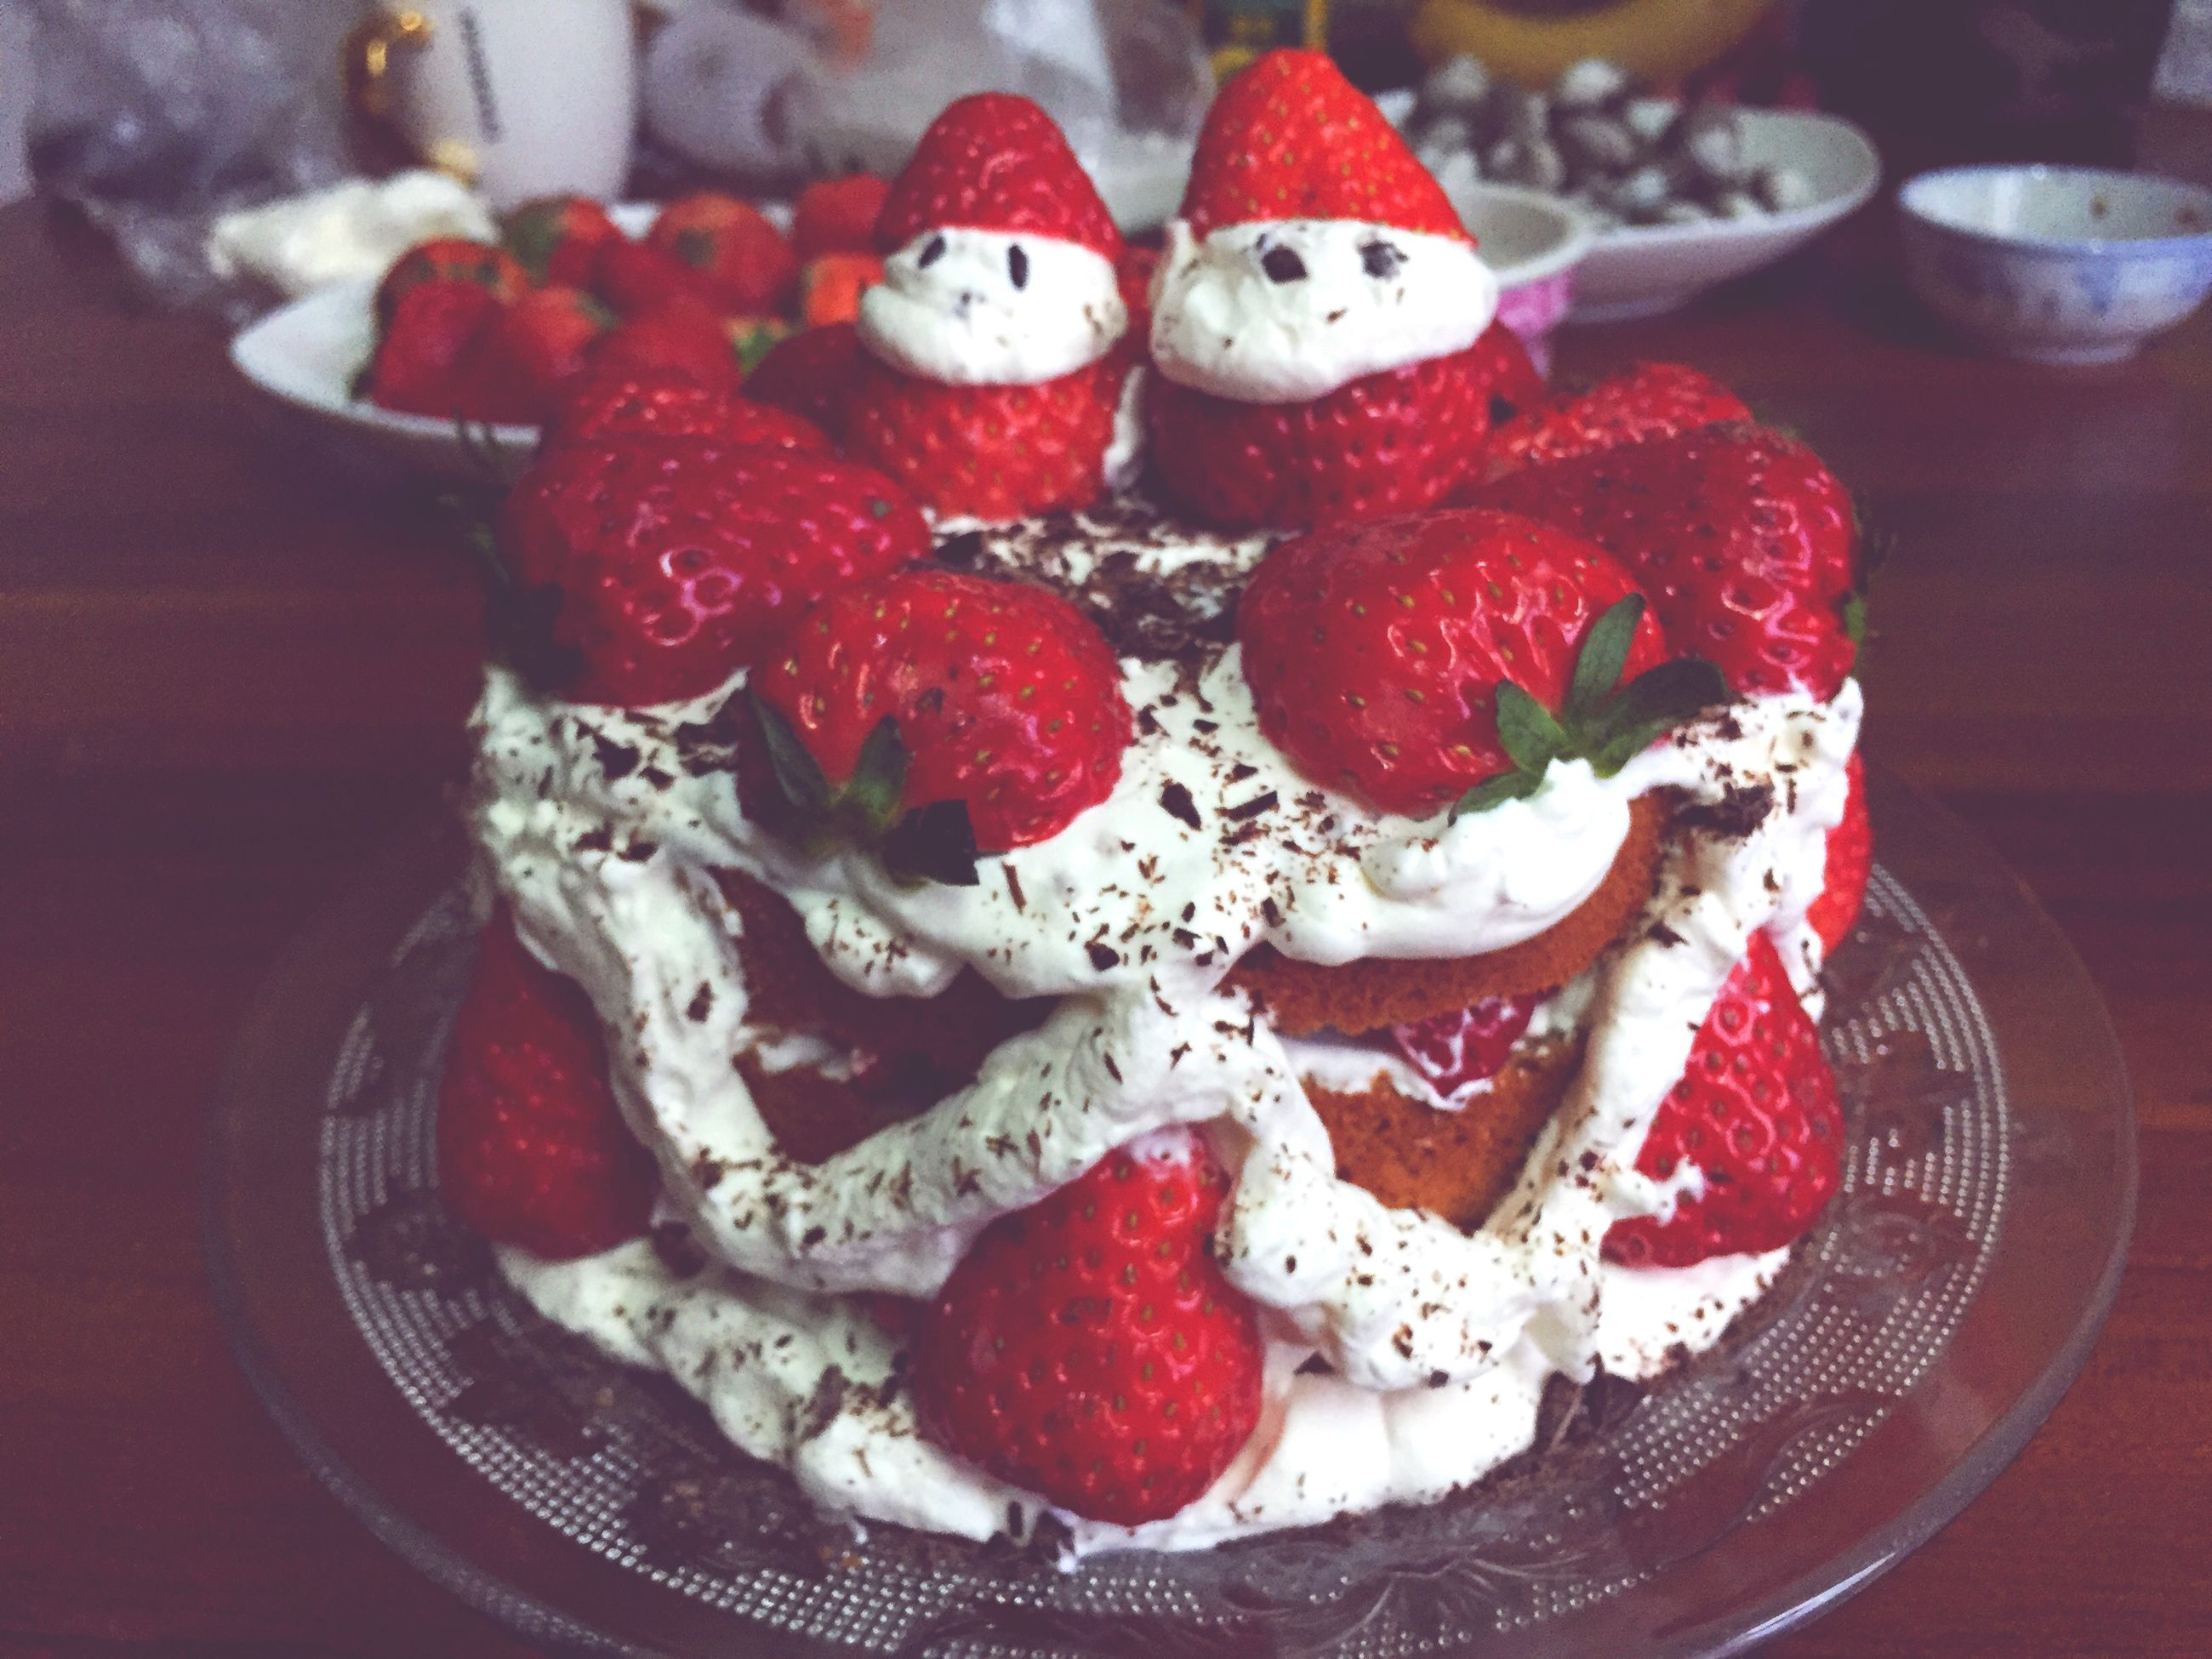 food and drink, food, indoors, freshness, strawberry, ready-to-eat, plate, sweet food, still life, indulgence, red, dessert, fruit, table, temptation, serving size, raspberry, cake, healthy eating